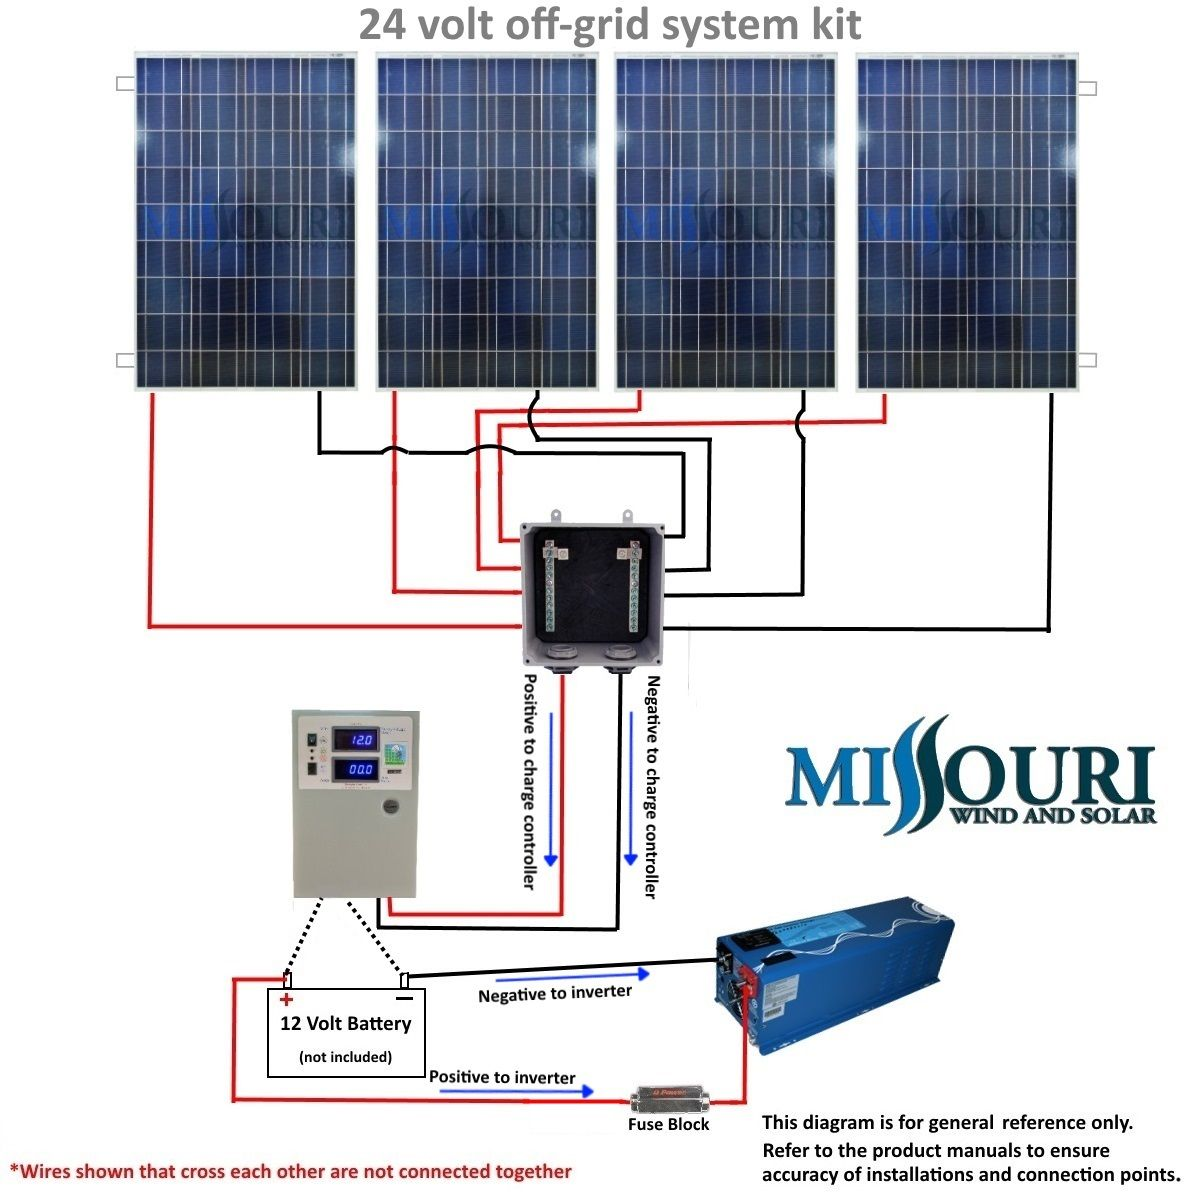 1000 watt 24 volt off grid solar panel kit solar off grid solar1000 watt 24 volt [ 1200 x 1200 Pixel ]